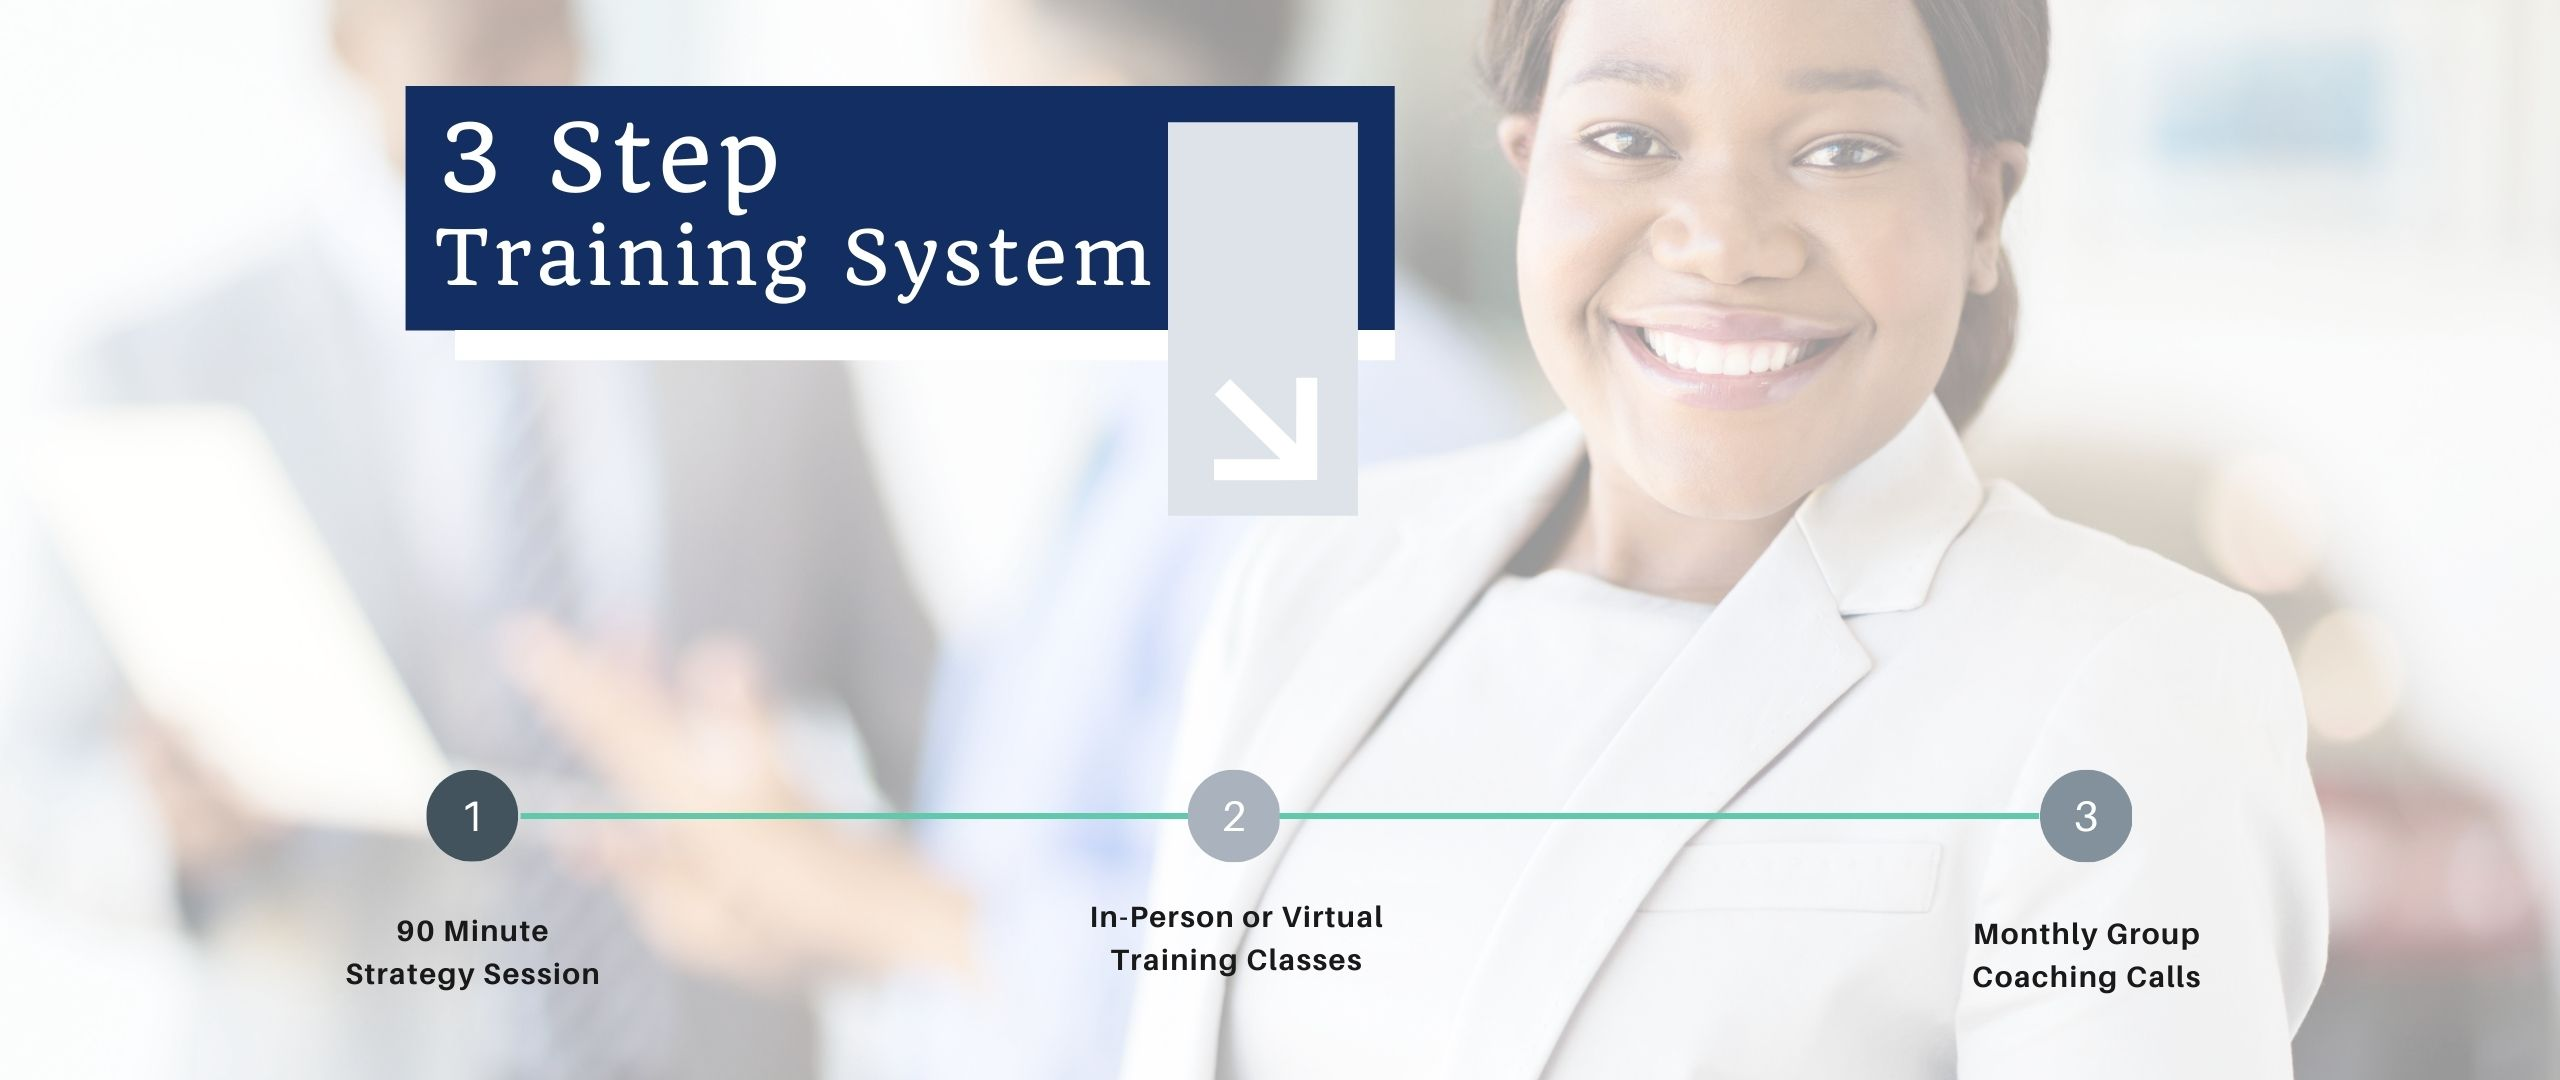 larek point consulting 3 step training system